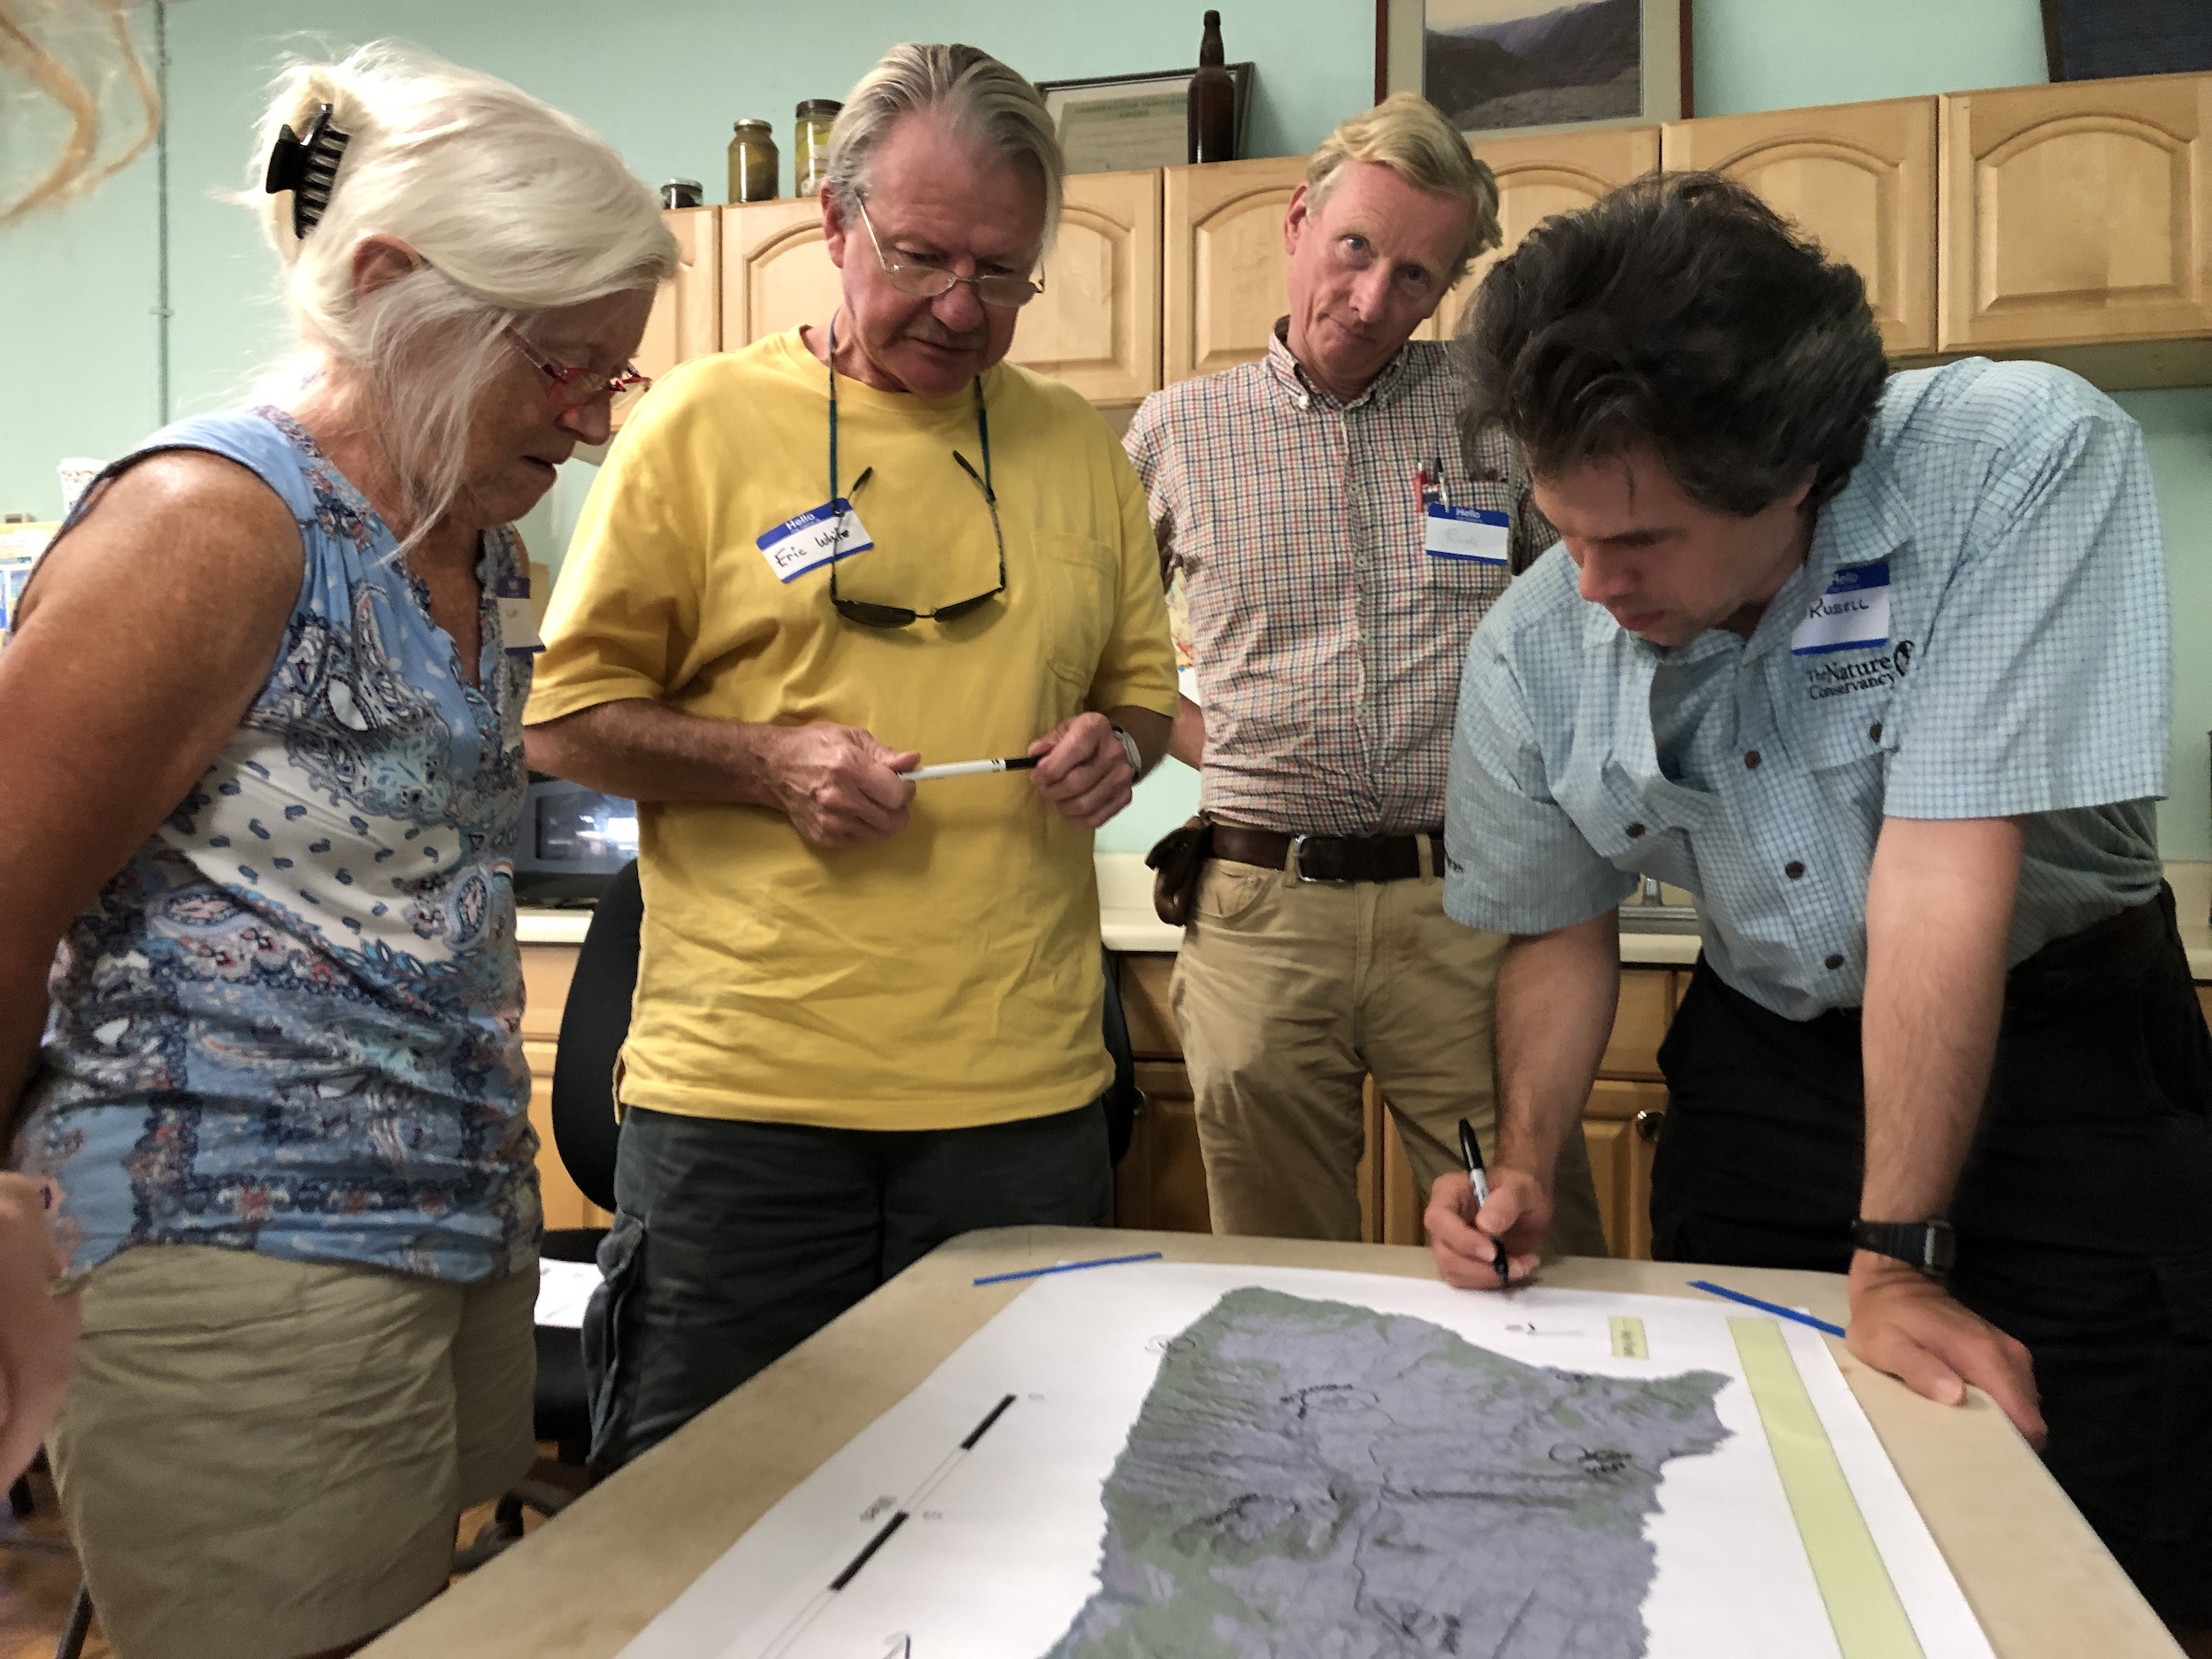 Molokai Vegetative Fuels Management Collaborative Action Planning and Mapping Workshop_4_2_2019_11.JPG